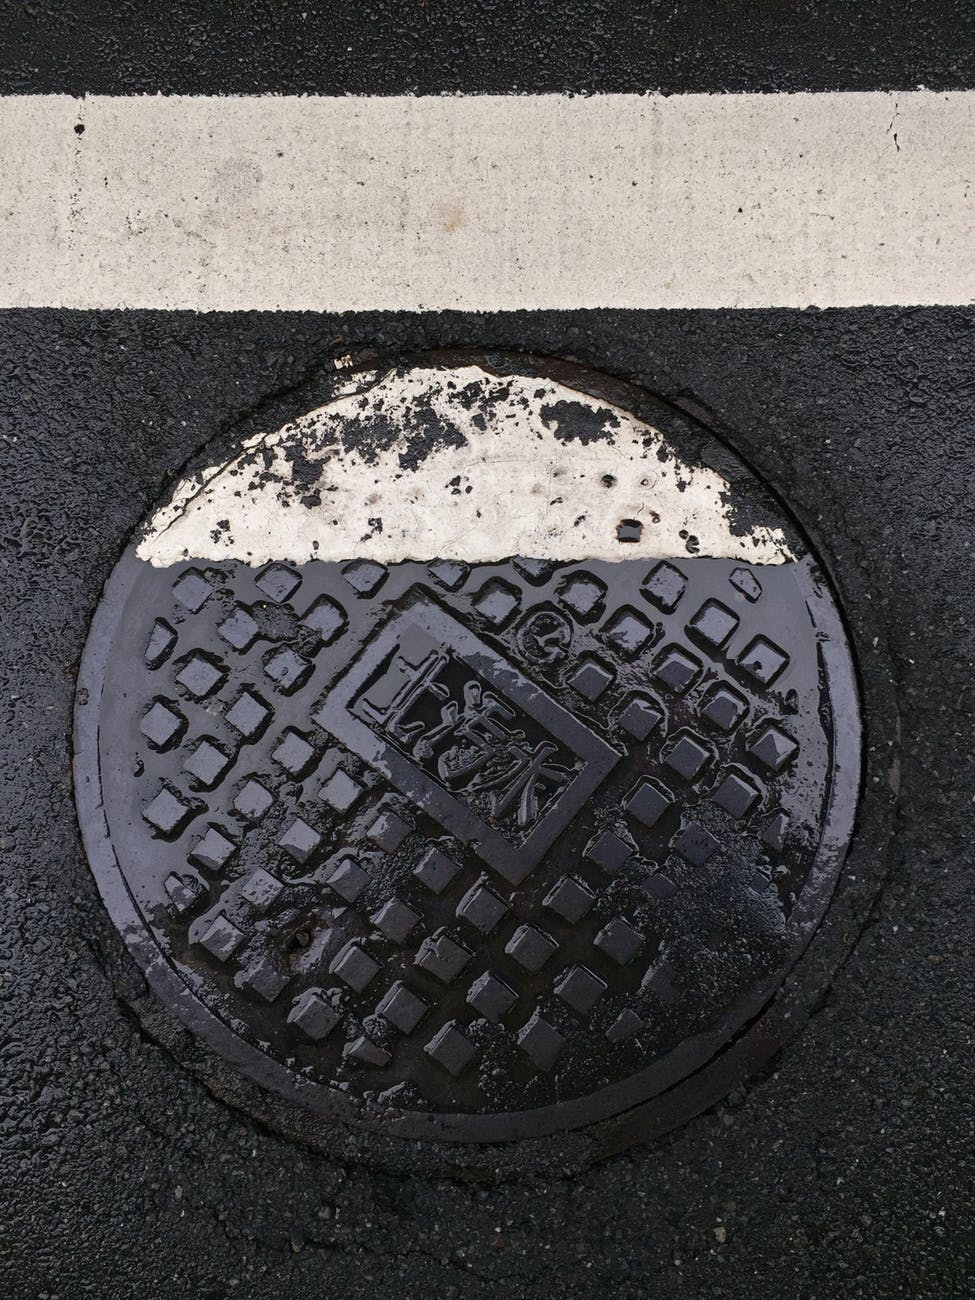 photo of sewer on road